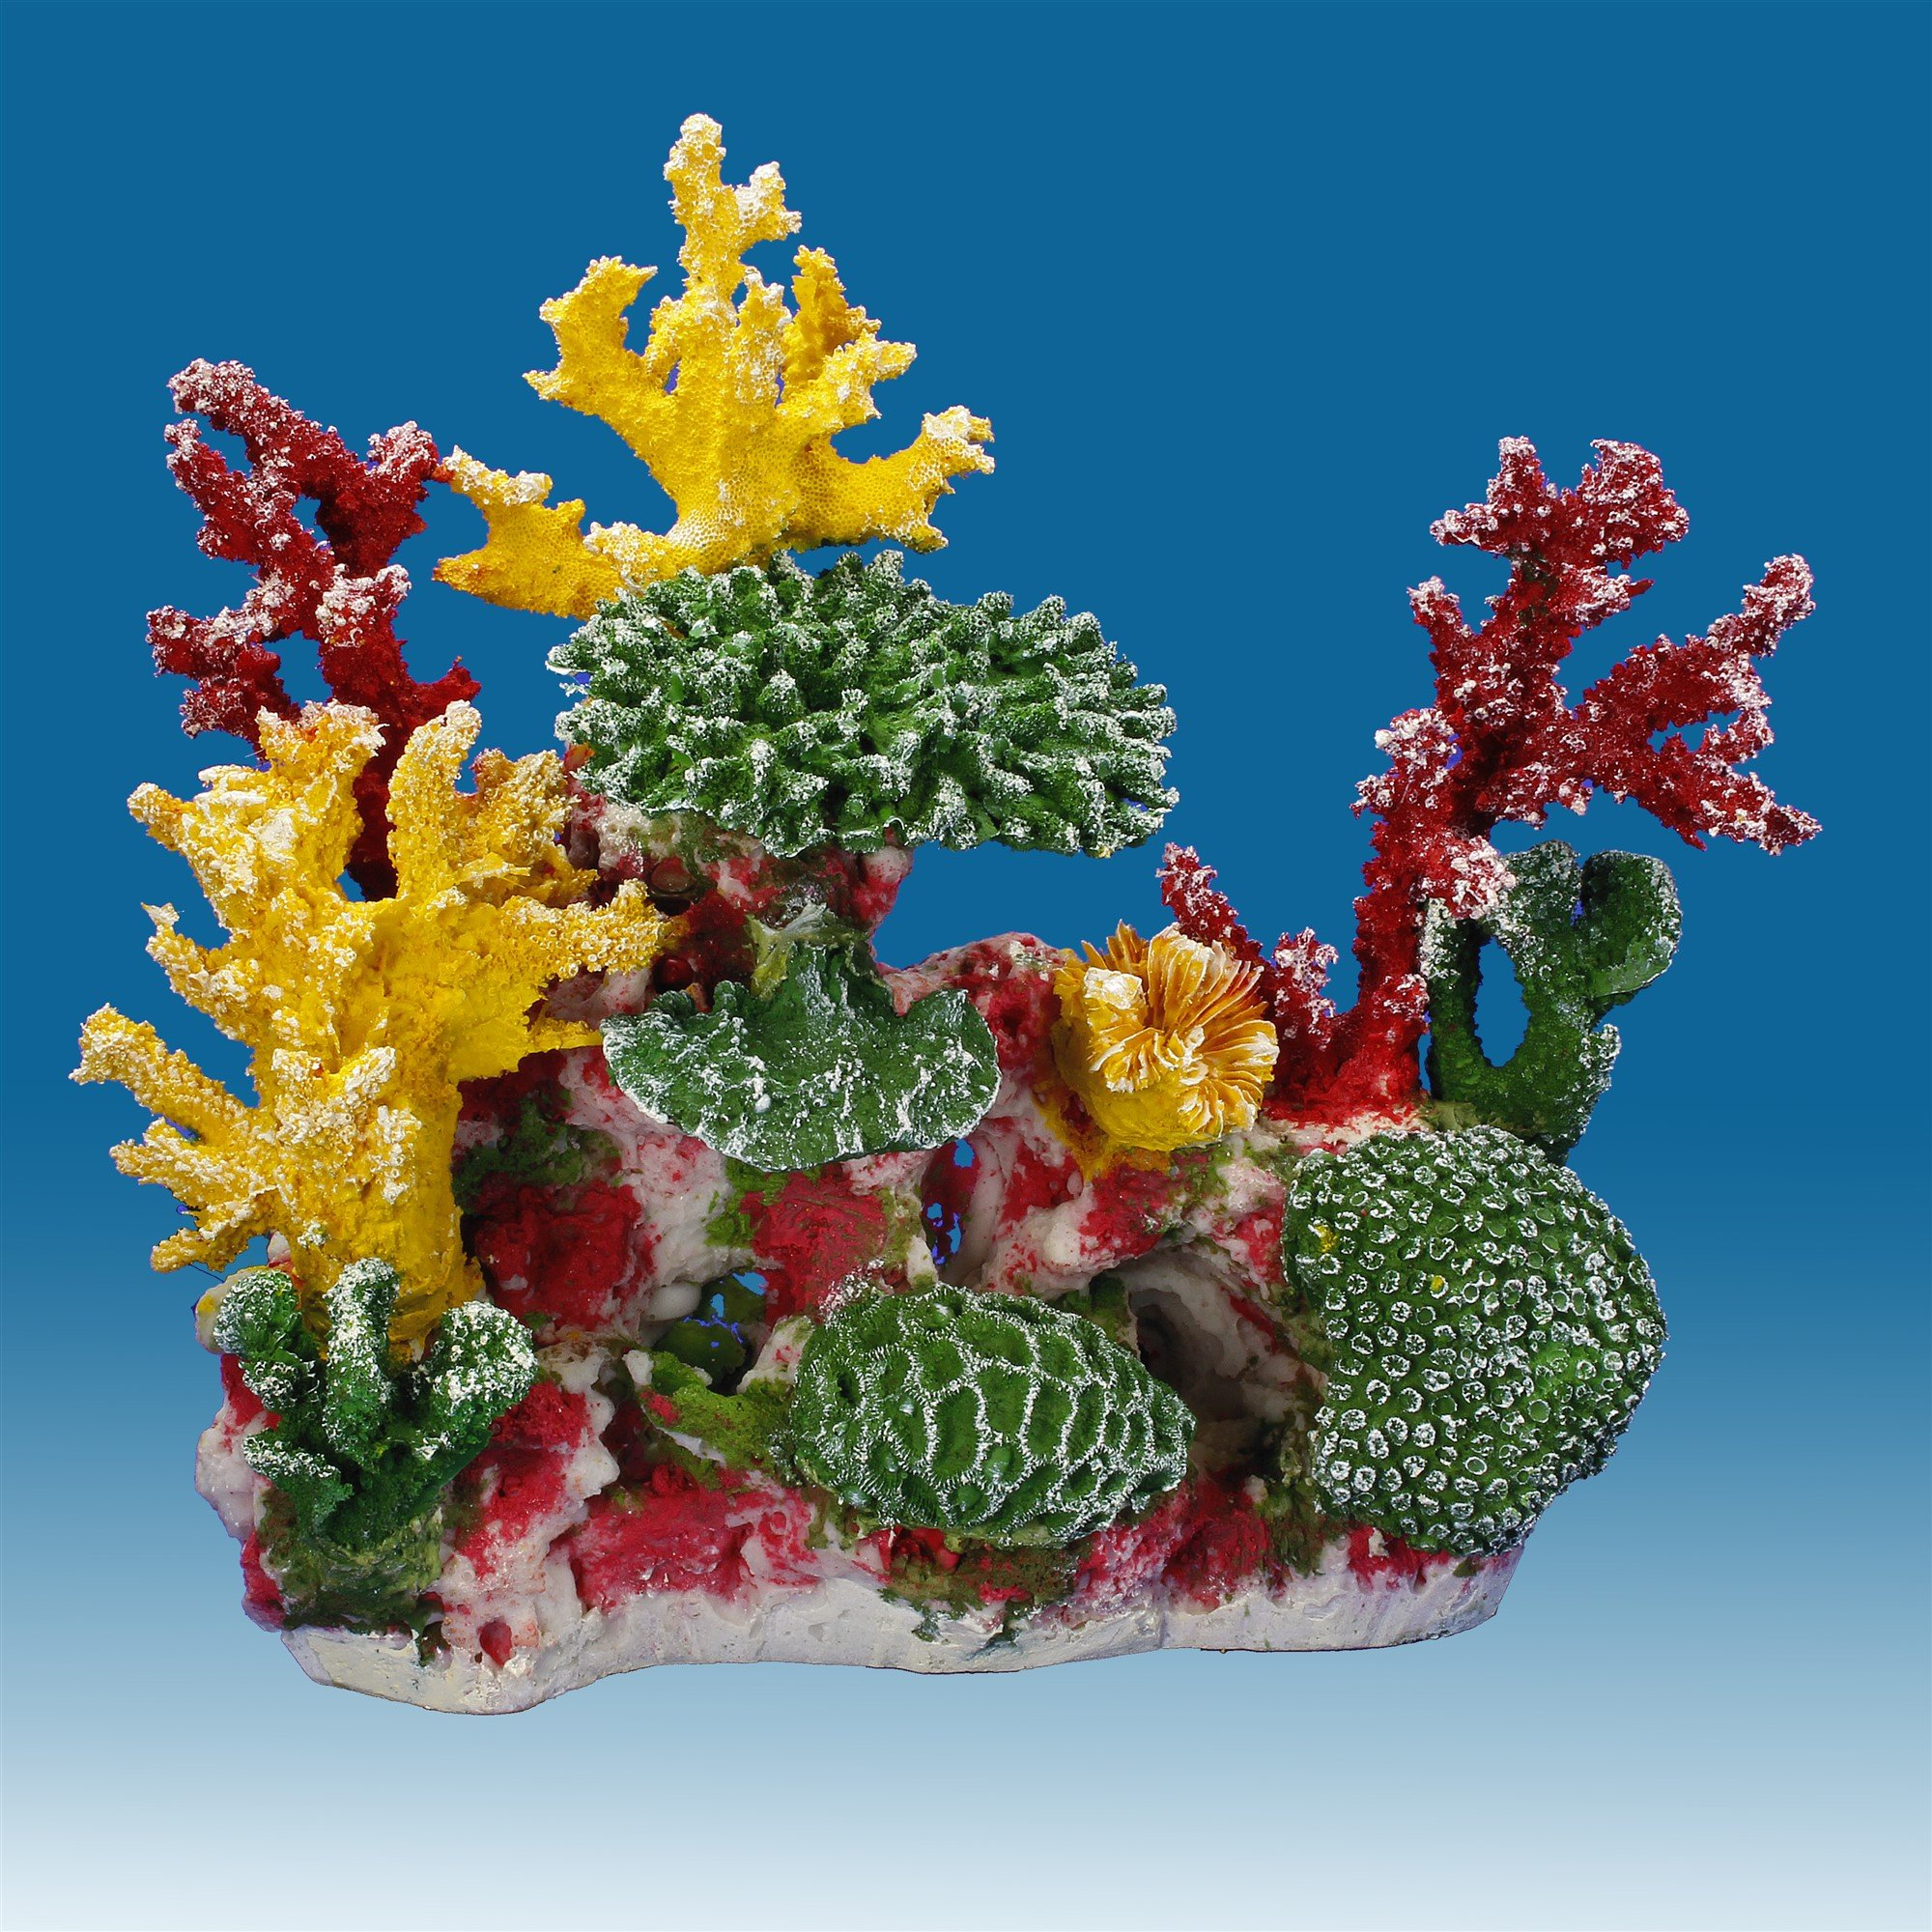 Instant Reef DM056 Artificial Coral Inserts Decor, Fake Coral Reef Decorations for Colorful Freshwater Fish Aquariums, Marine and Saltwater Fish Tanks by Instant Reef